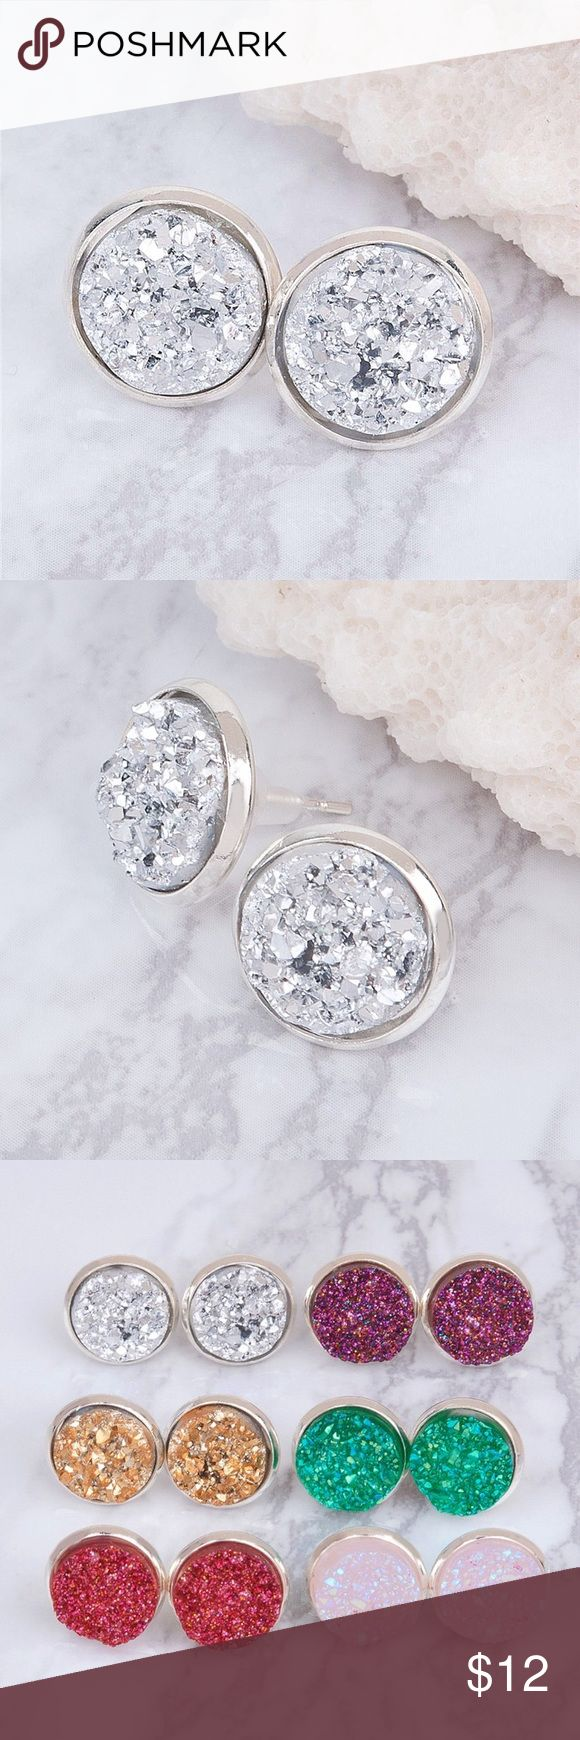 Druzy earrings Brand new sparkling white Druzy earrings silver with plastic backings. ❤️Orice firm unless bundled 2 or more save 5% ❤️ There are 2 pair available. Jewelry Earrings